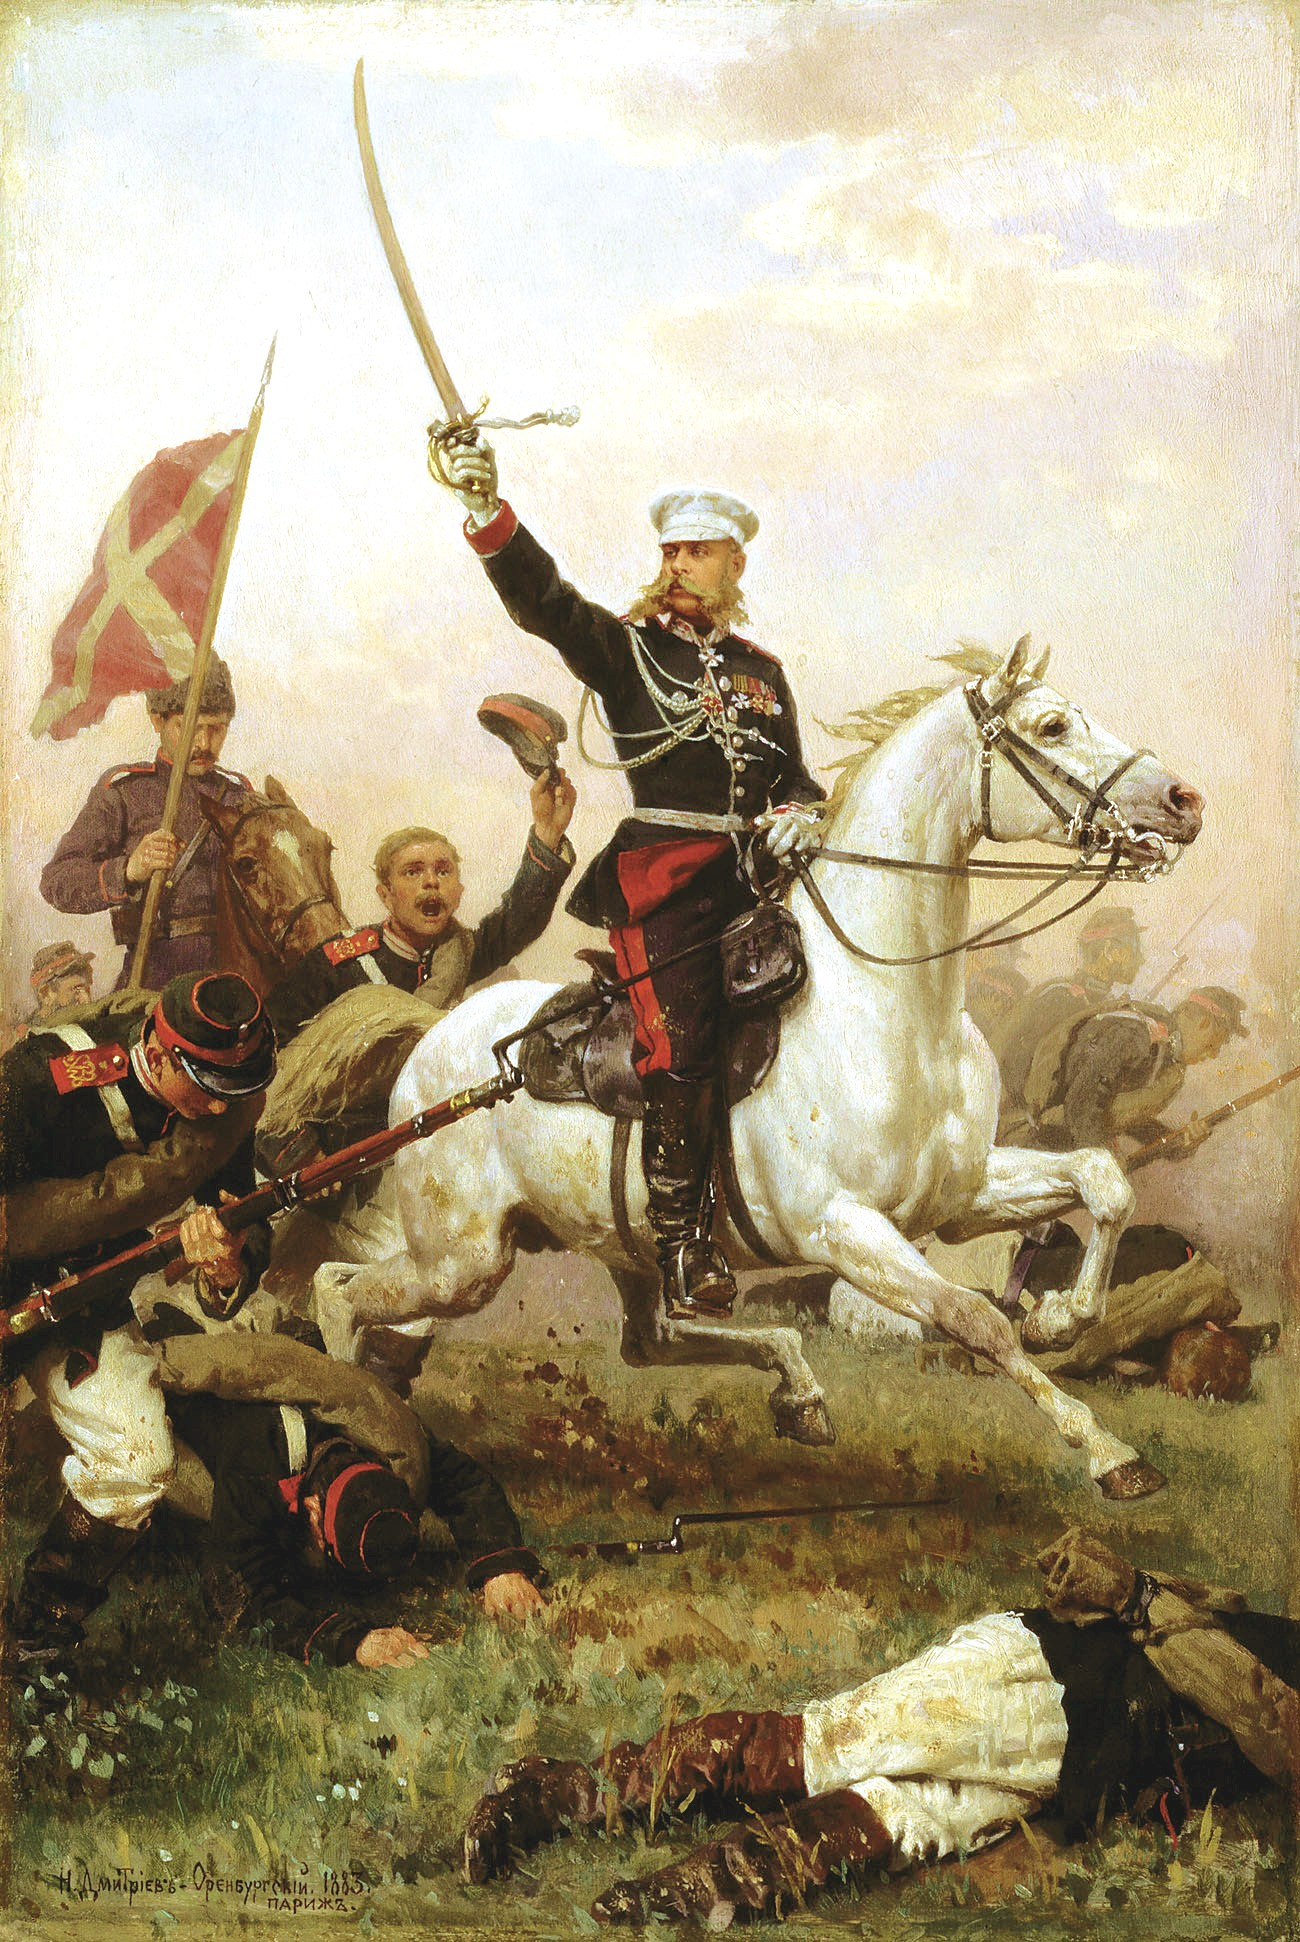 nikolai-dmitriev-orenburgsky-general-nikolai-skobolyov-leads-the-way-1883.jpg